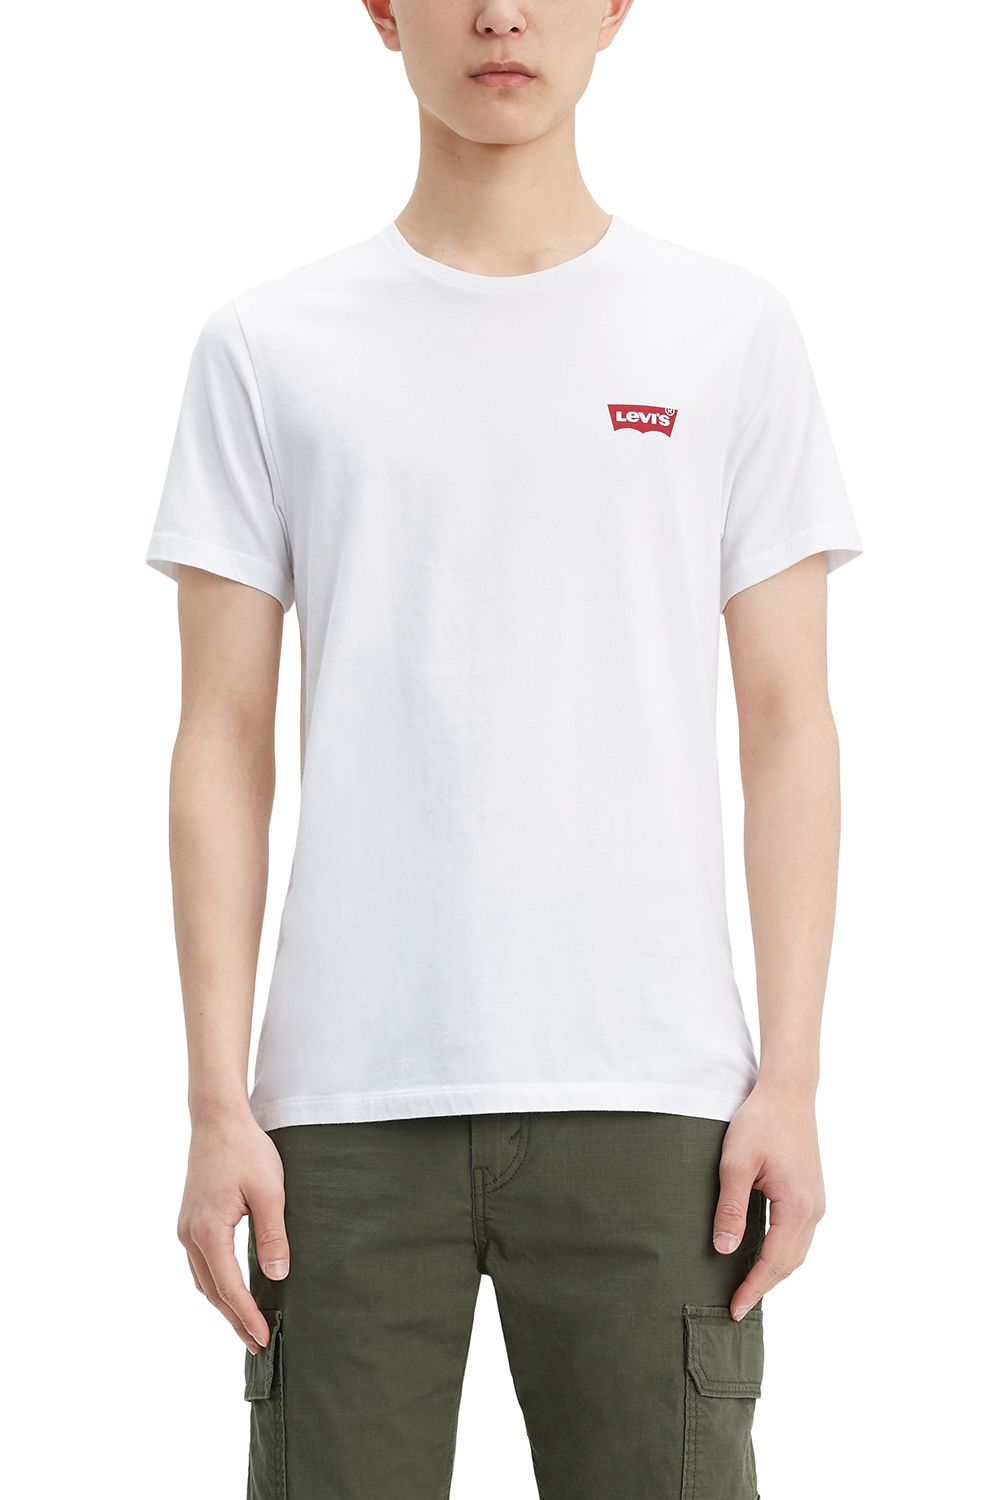 T-Shirt Levis CREWNECK GRAPHIC Hm White